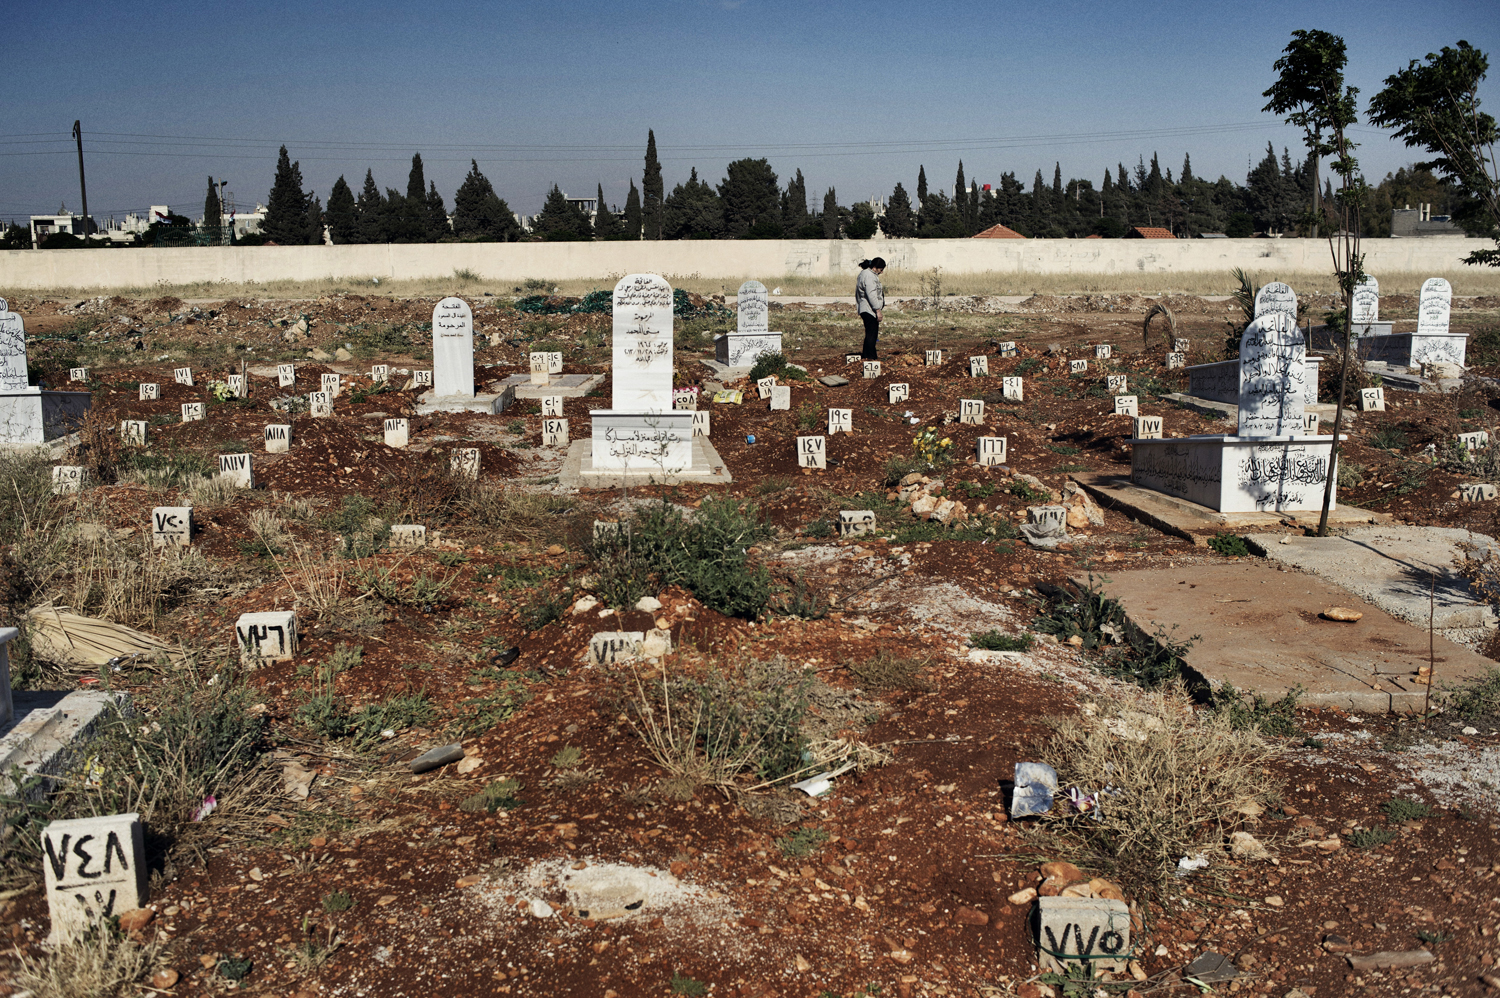 Some 4,000 soldiers who died while fighting for the government of Syrian President Bashar Assad are buried in the Martyrs of Firdos Cemetery in Zahara, an Alawite neighborhood of Homs. May 13, 2014.